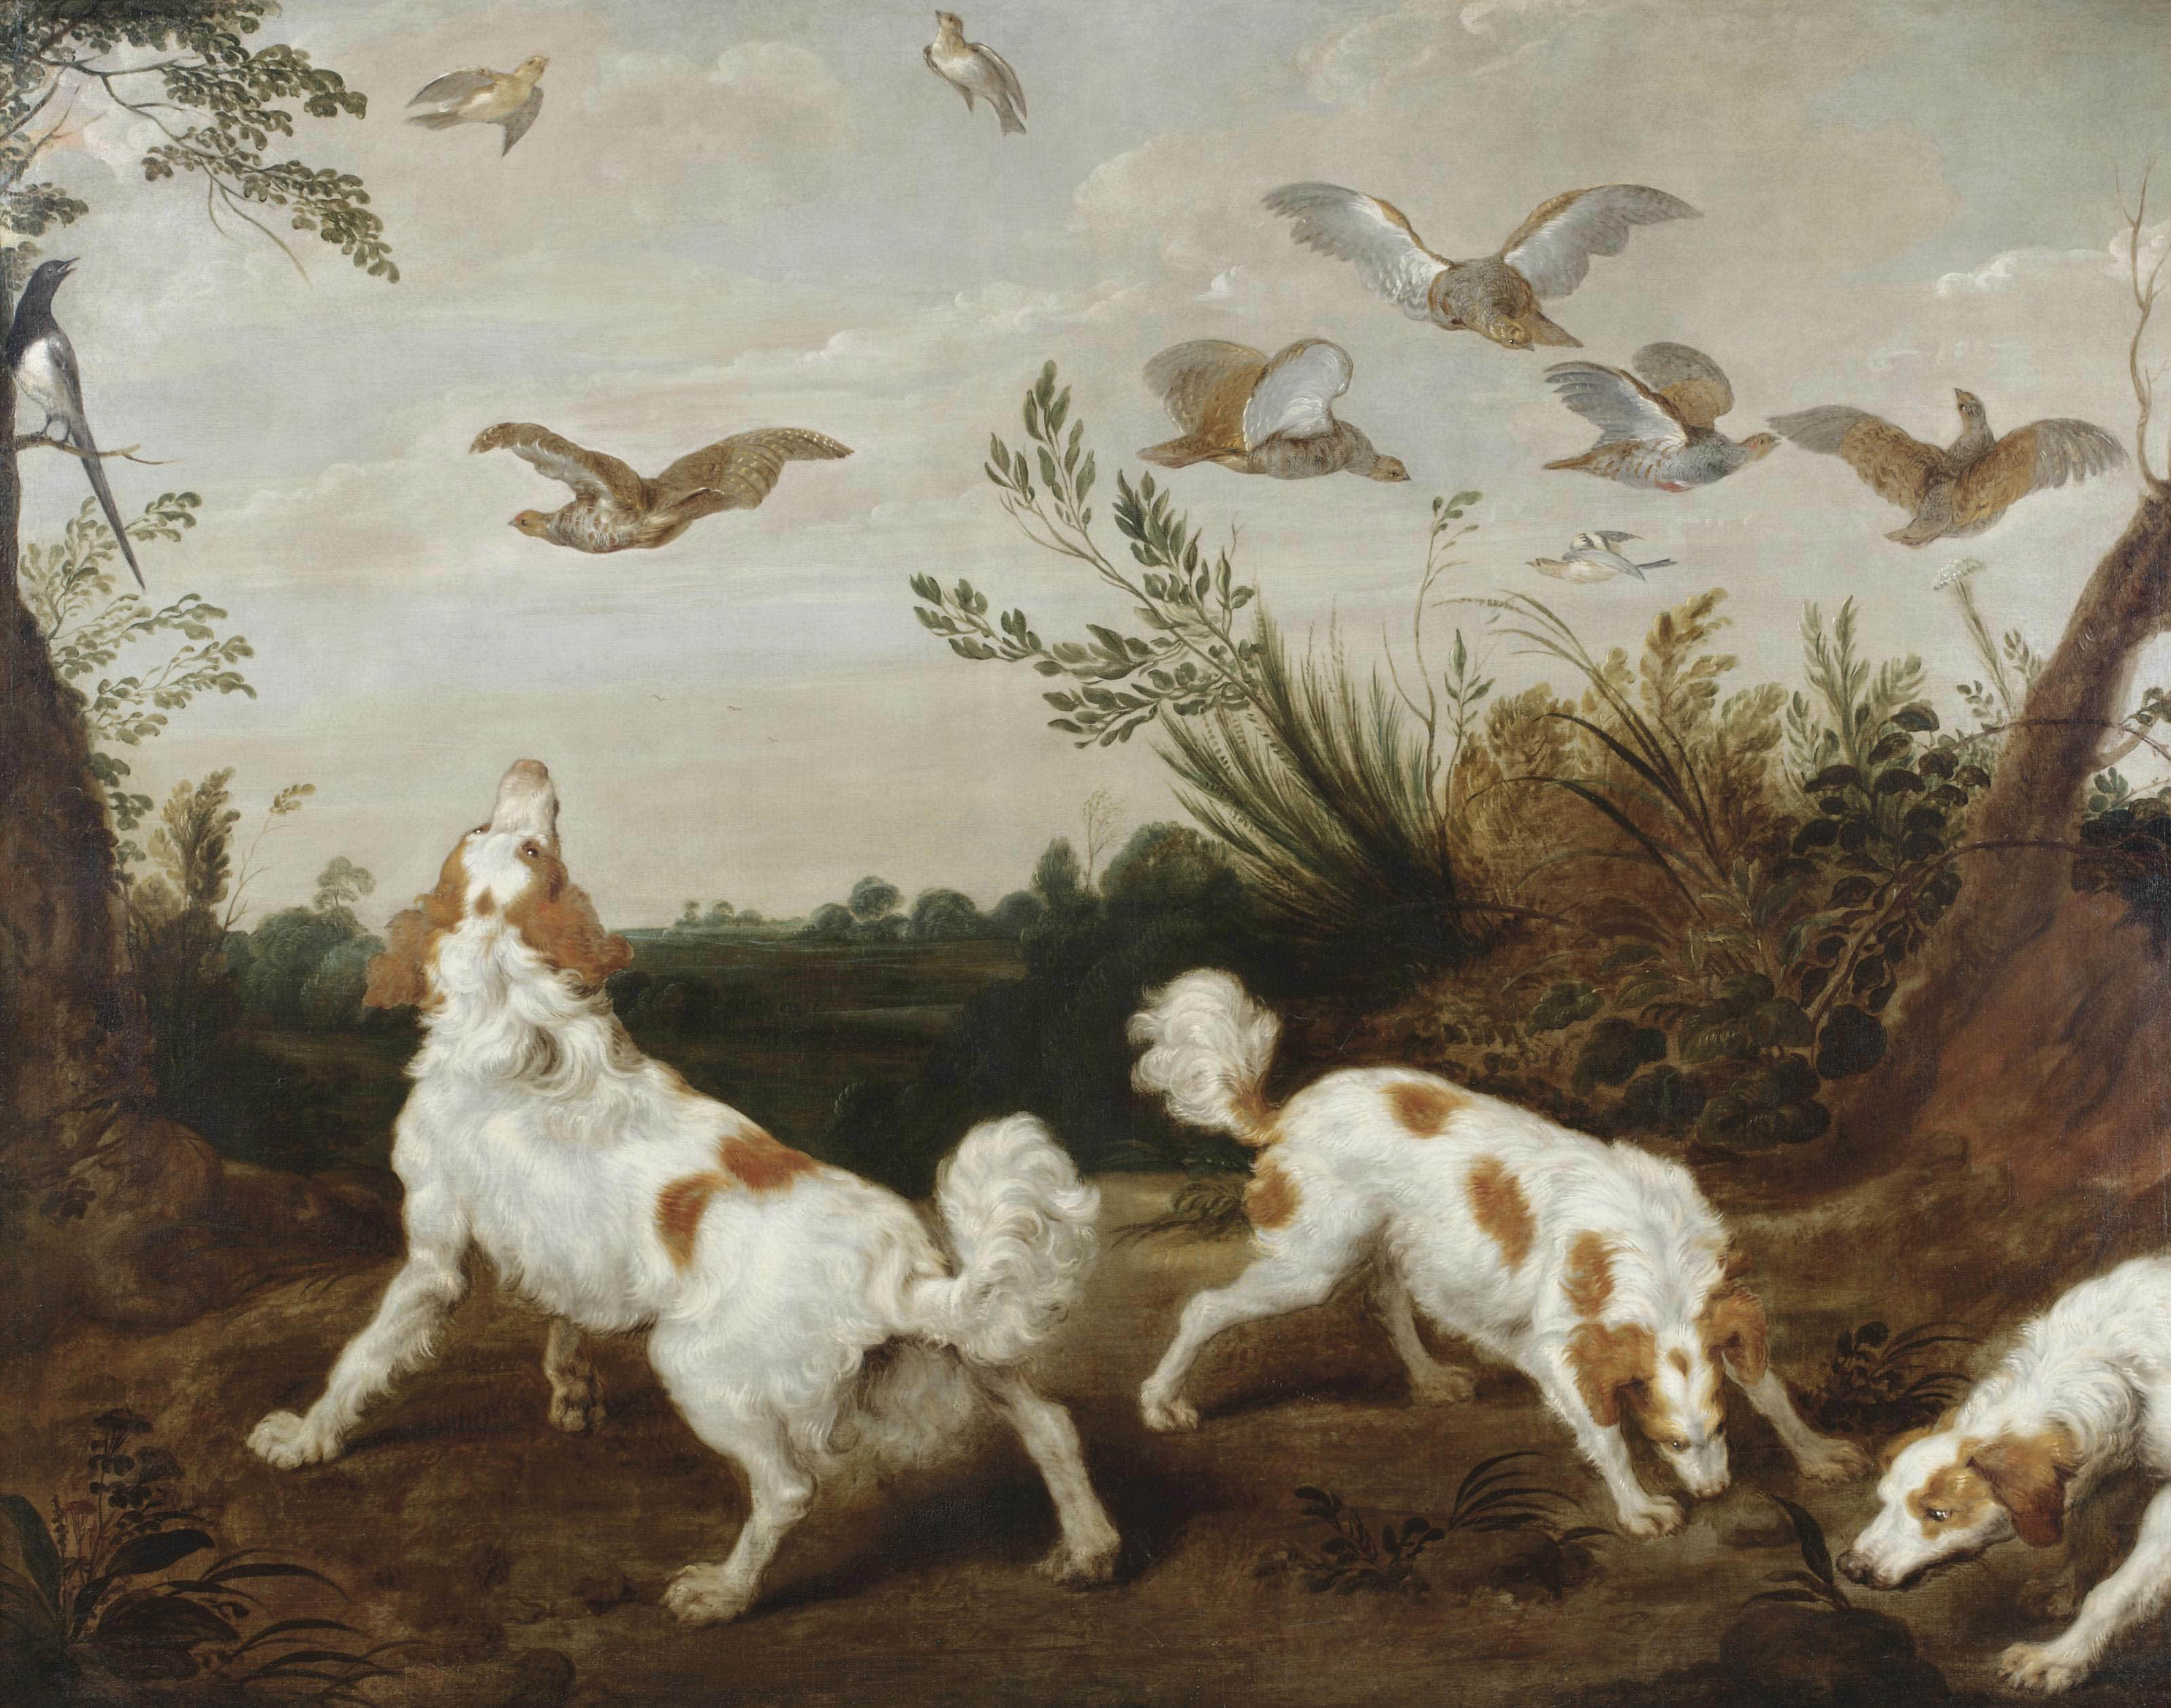 Three springer spaniels on the hunt for partridges